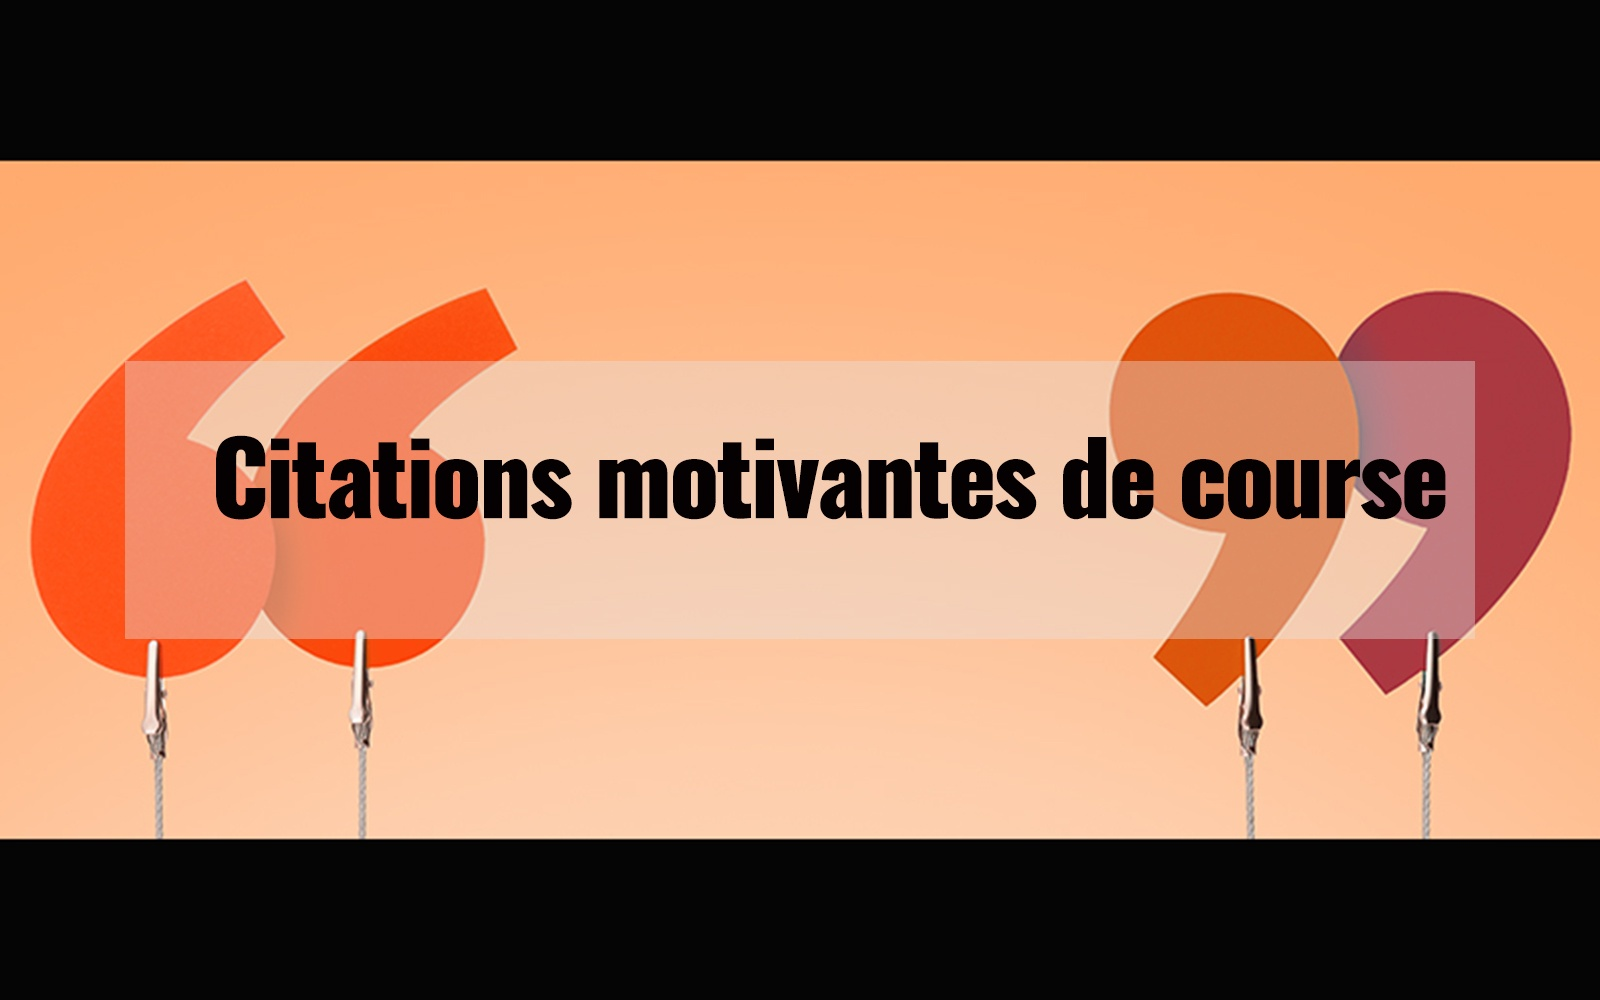 Citations motivantes de course à pied